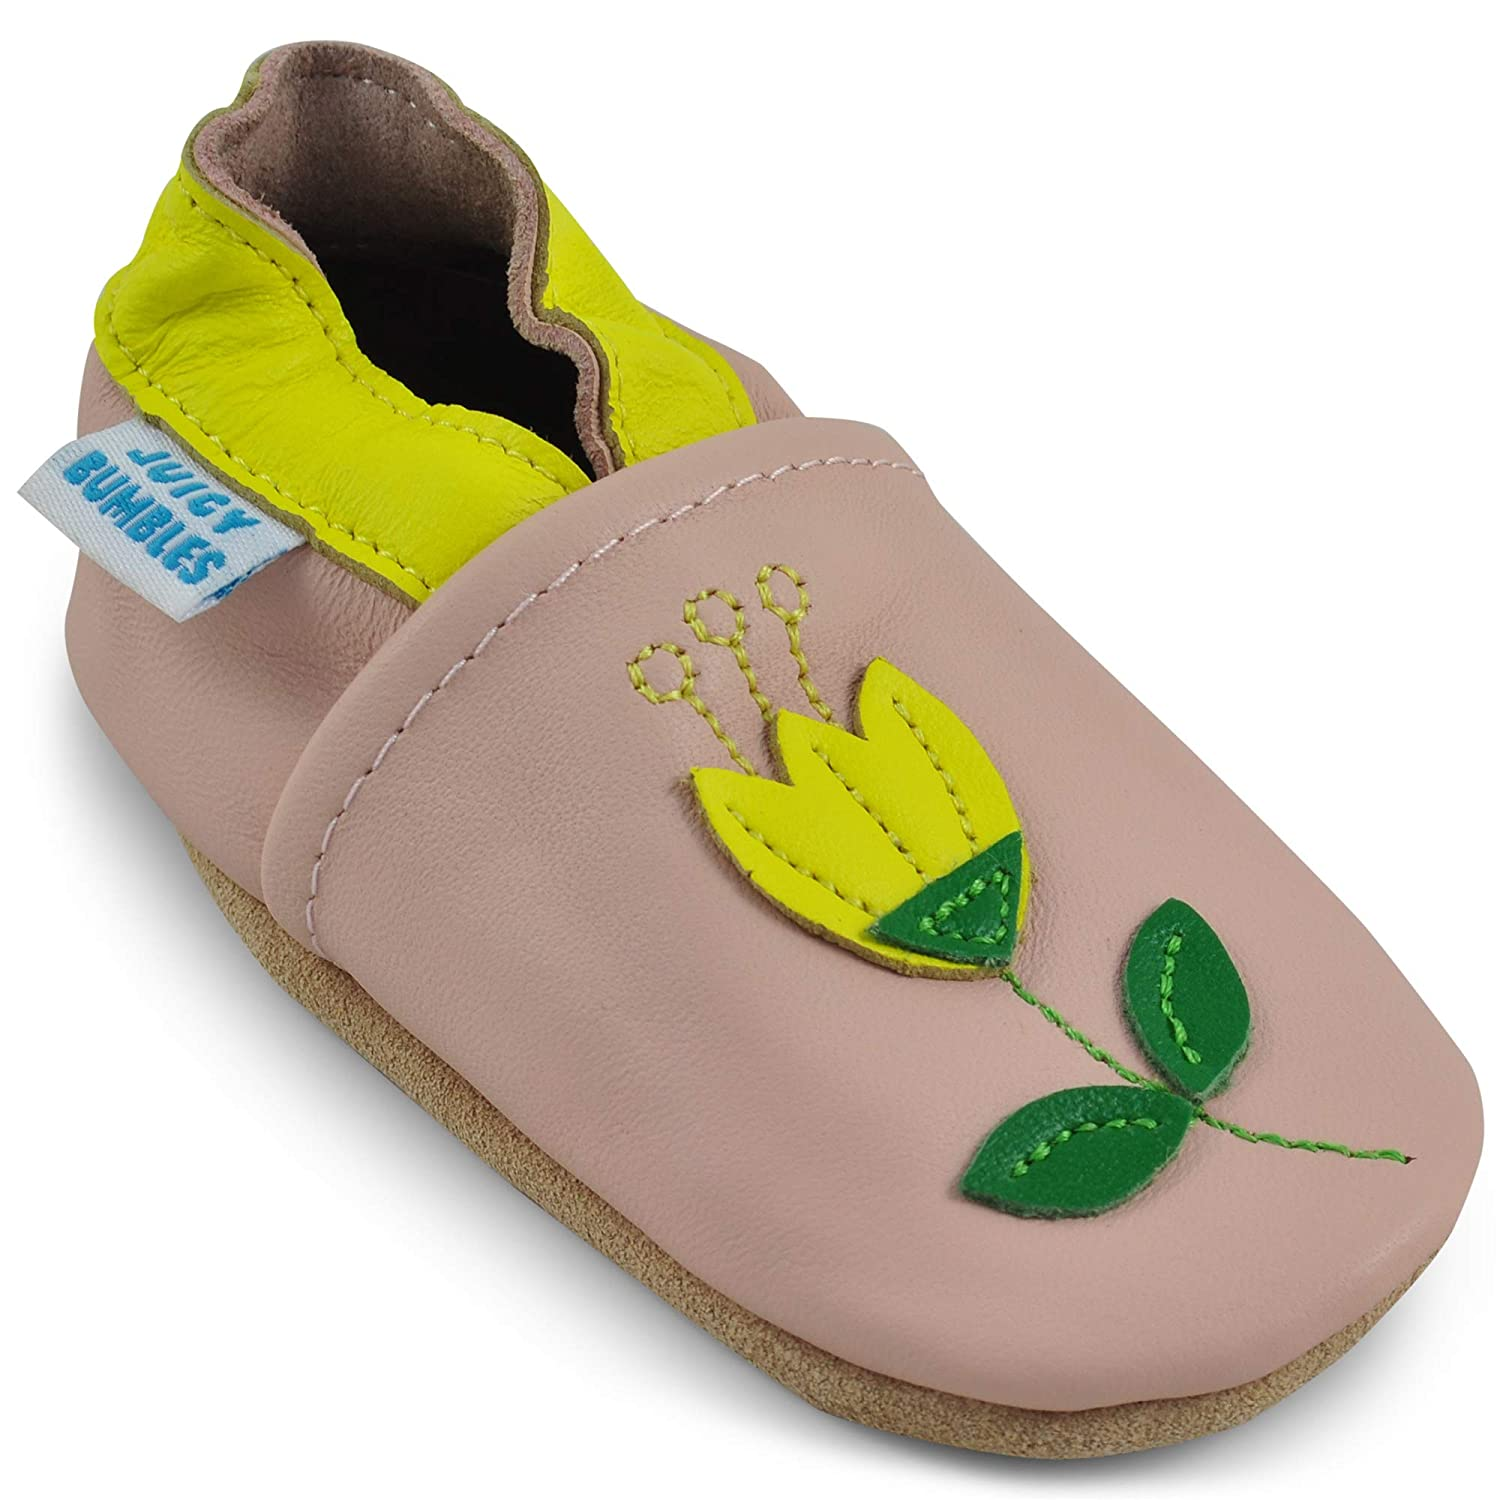 Baby Girl Shoes Baby Moccasins Baby Shoes Baby Walking Shoes Soft Sole Leather Baby Boy Shoes